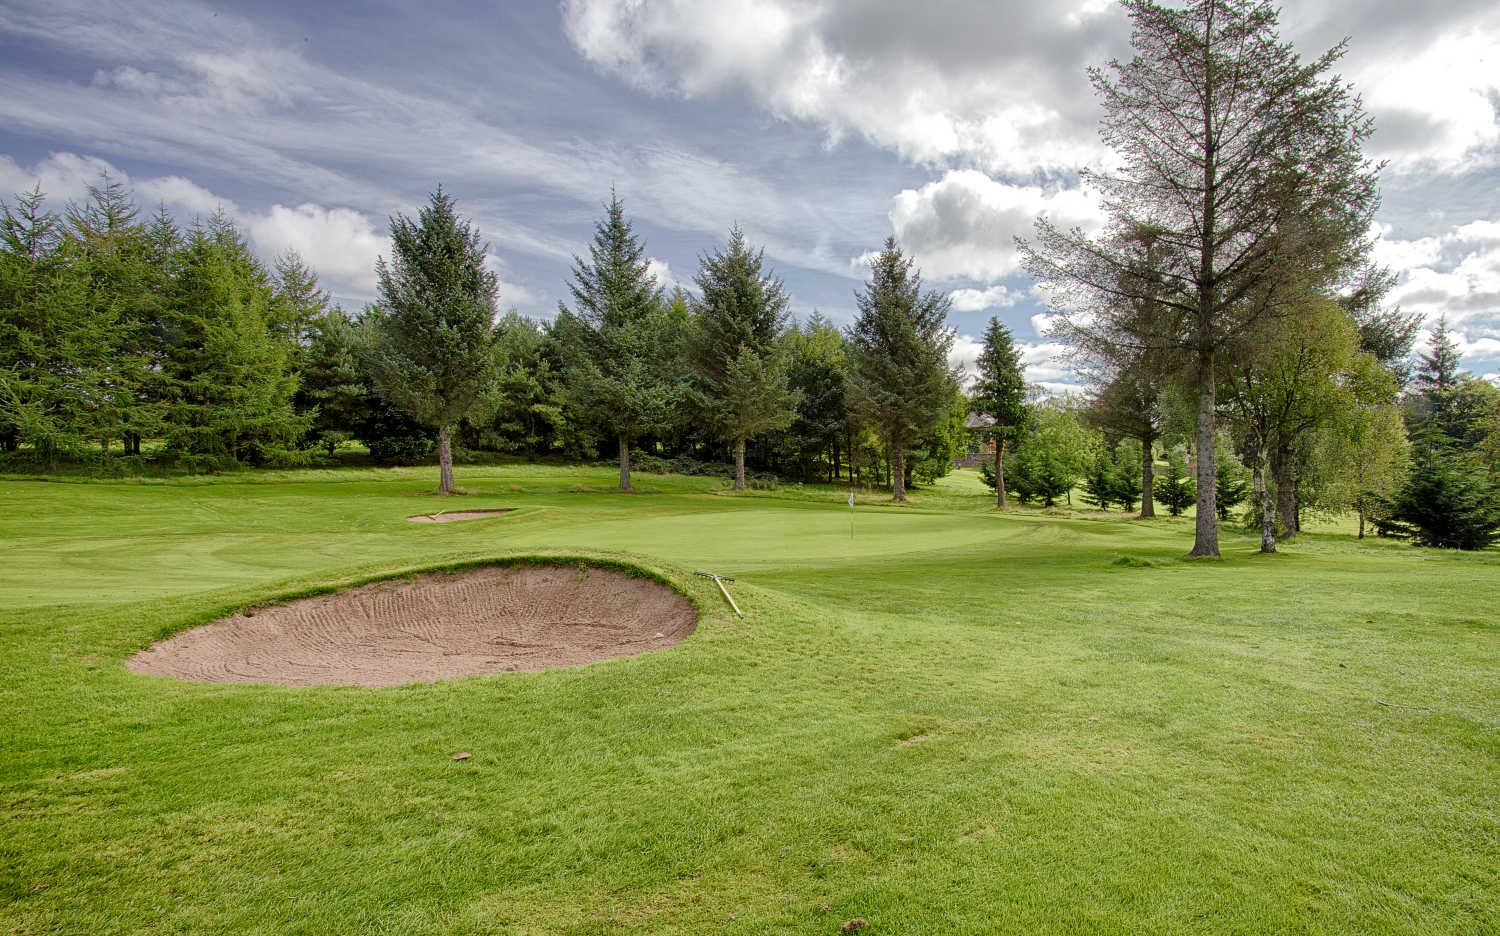 Dumfries & Galloway Golf Club